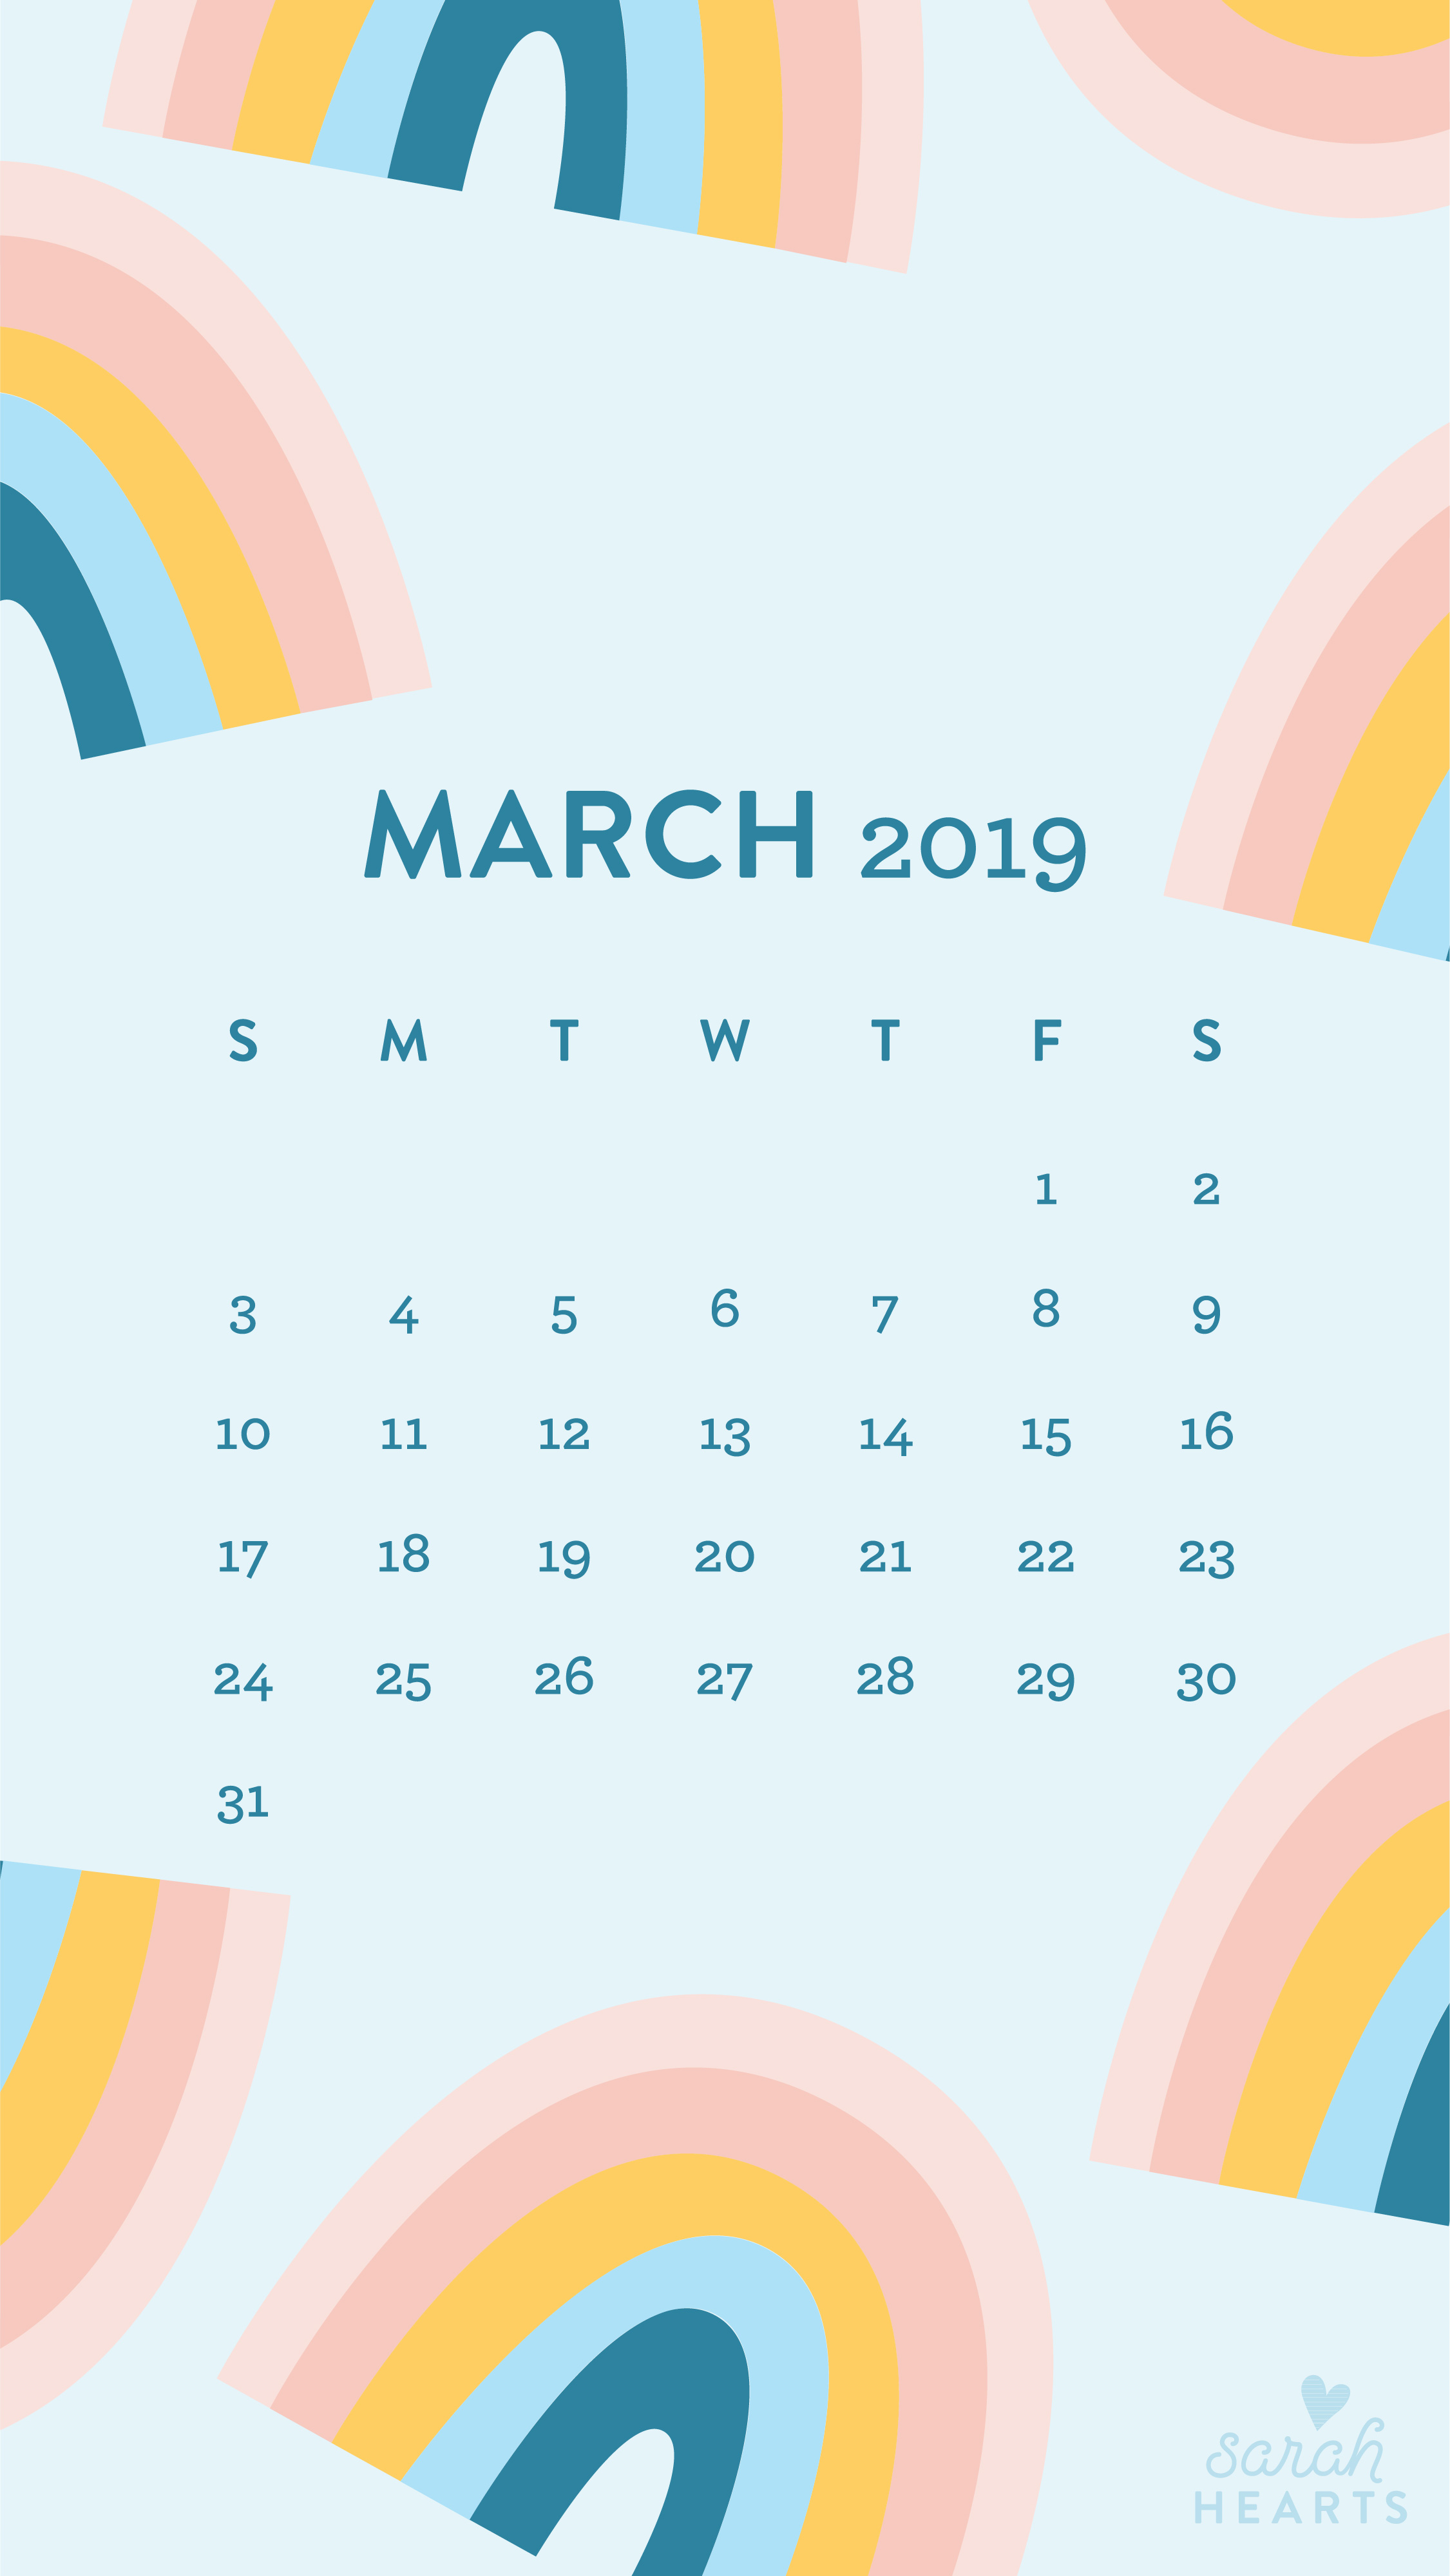 March 2019 Rainbow Calendar Wallpaper Sarah Hearts